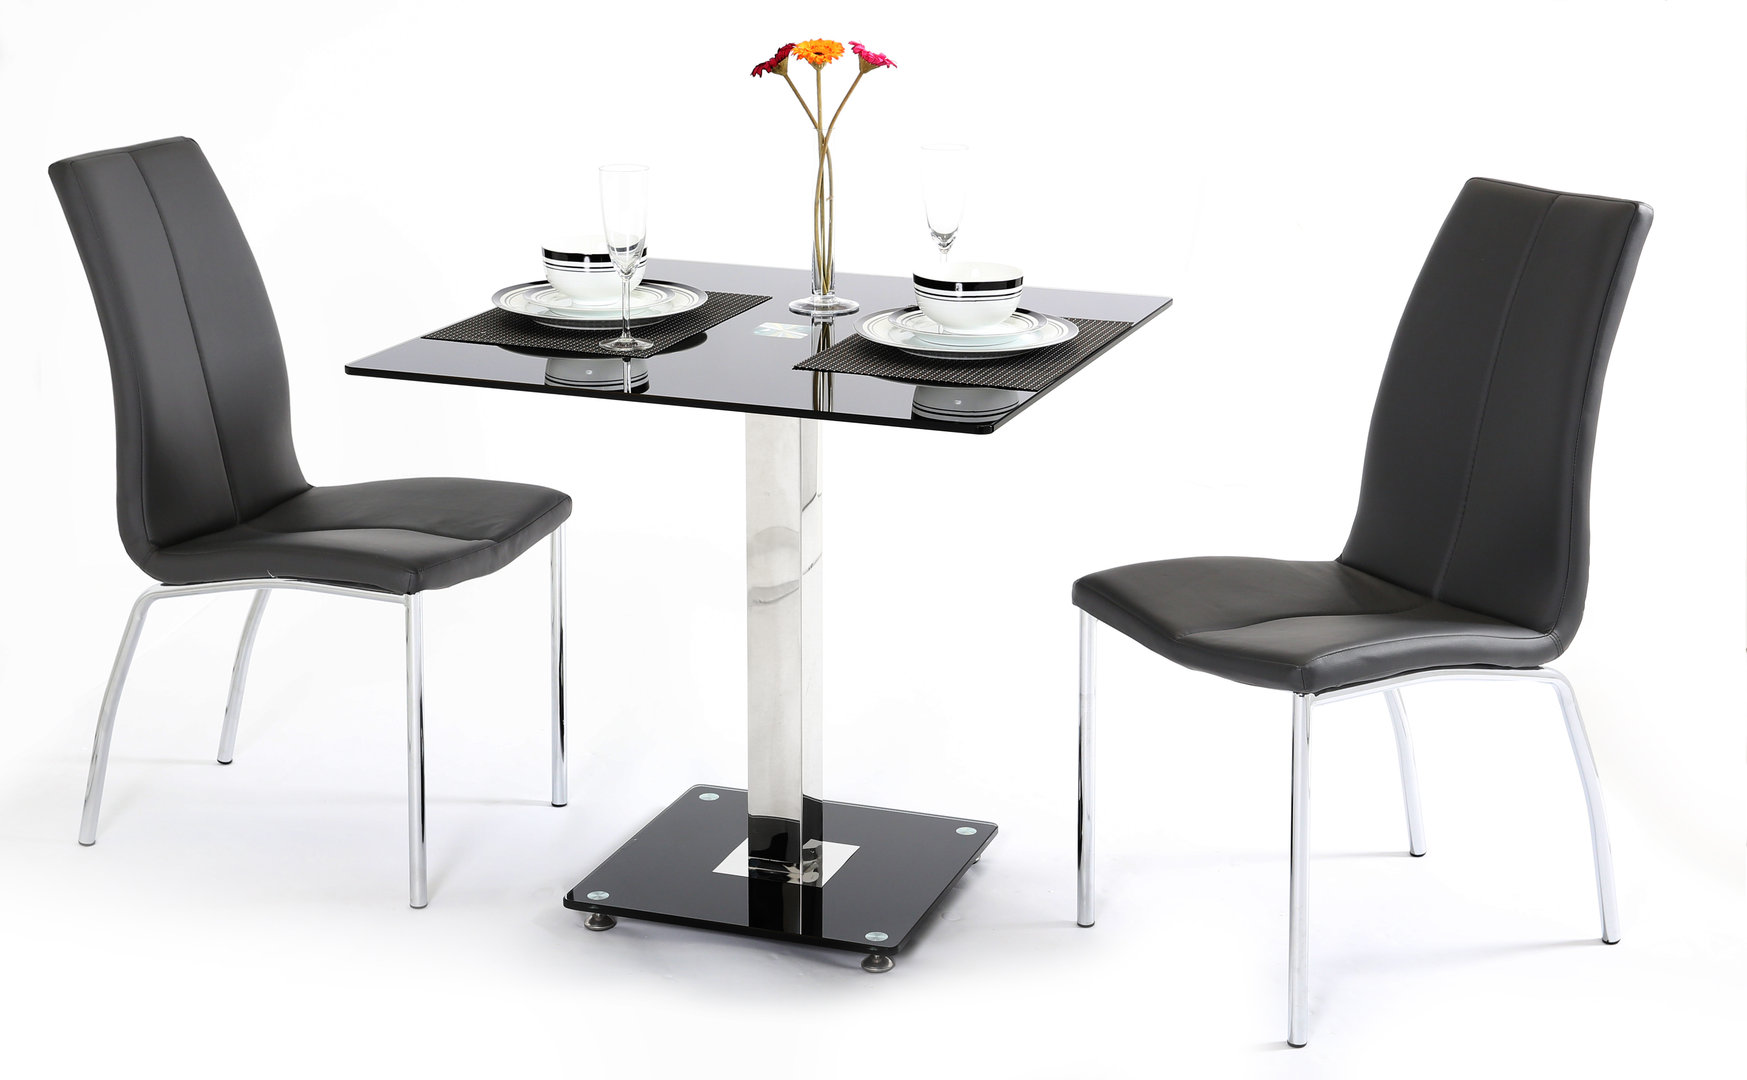 two chair dining table striped covers rooms black glass and 2 chairs homegenies